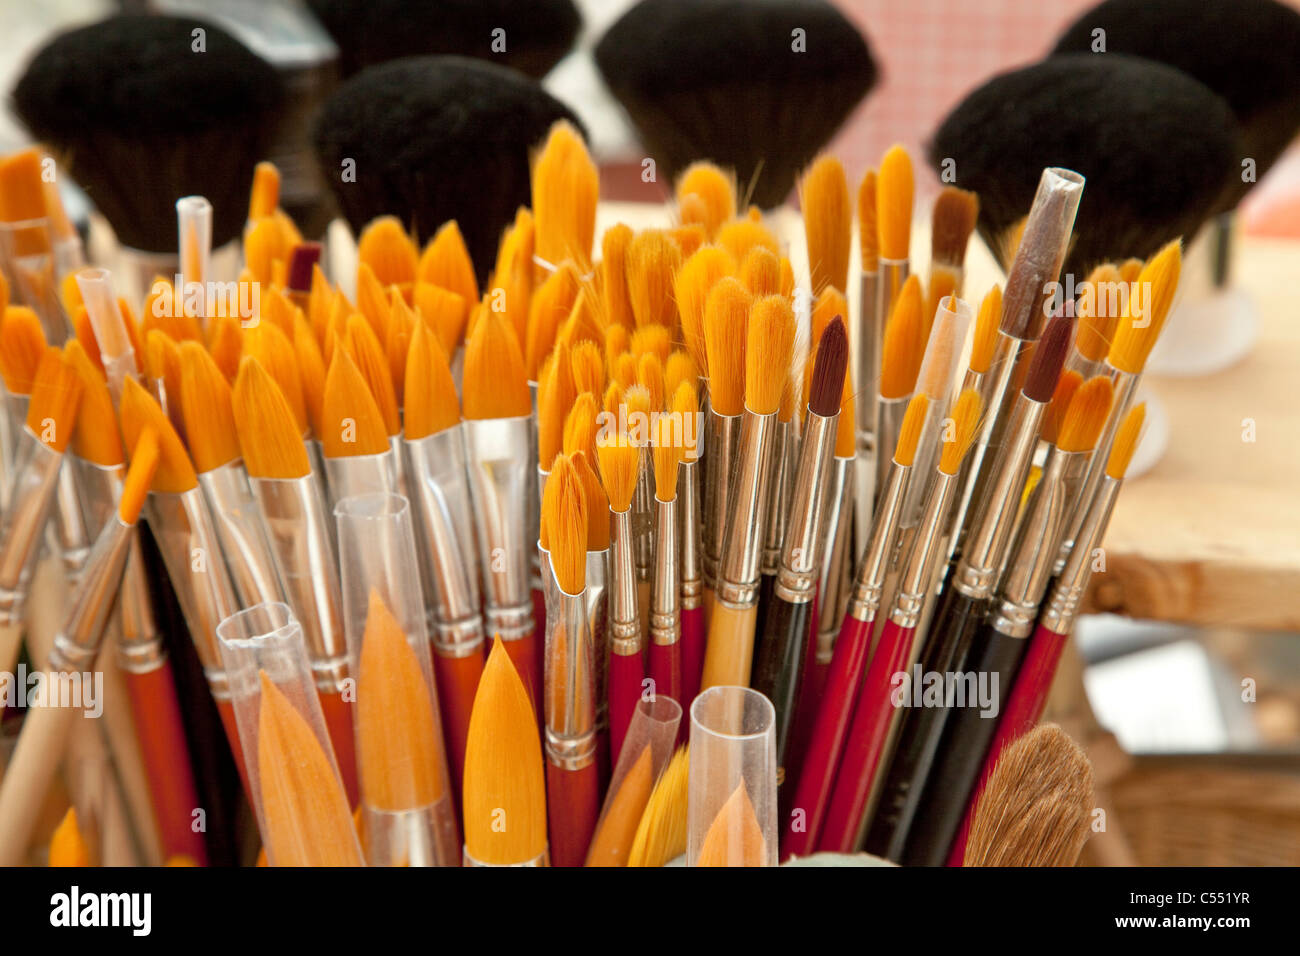 Many different brushes from different animal hair - Viele verschiedene Pinsel aus unterschiedlichen Tierhaaren - Stock Image